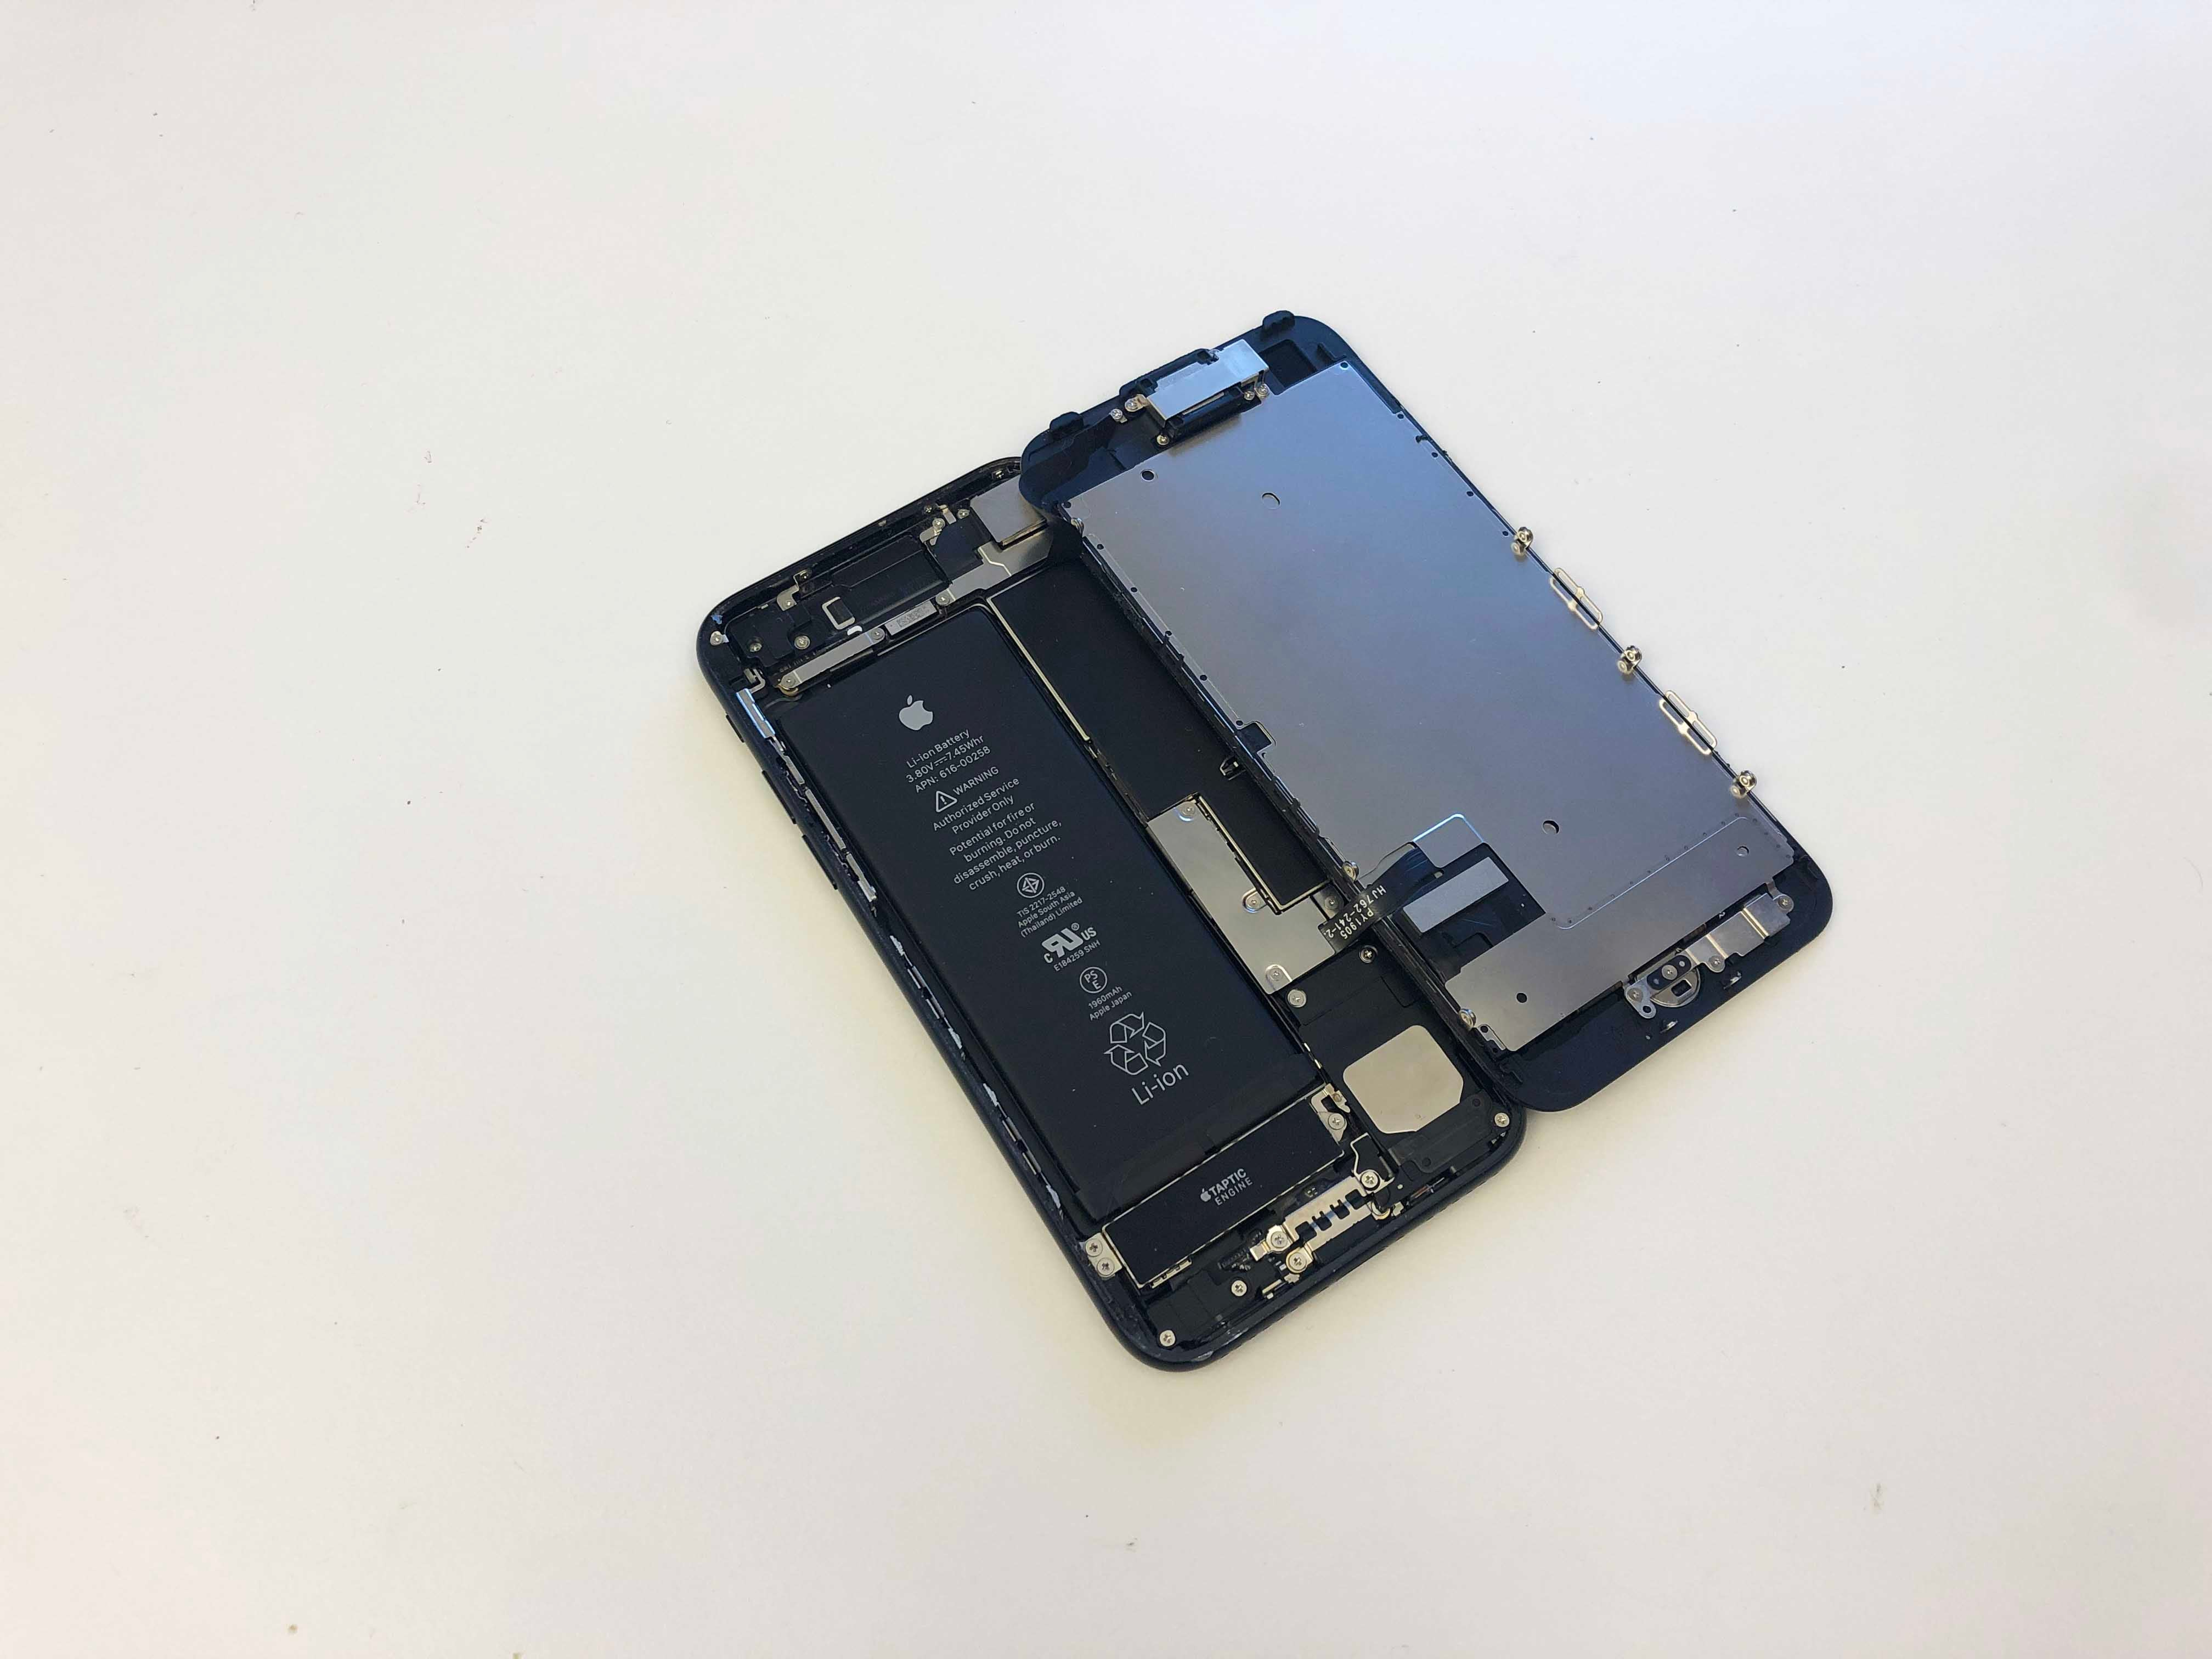 iPhone 7/7 Plus Battery Replacement - Opening the phone screen 3 - 6